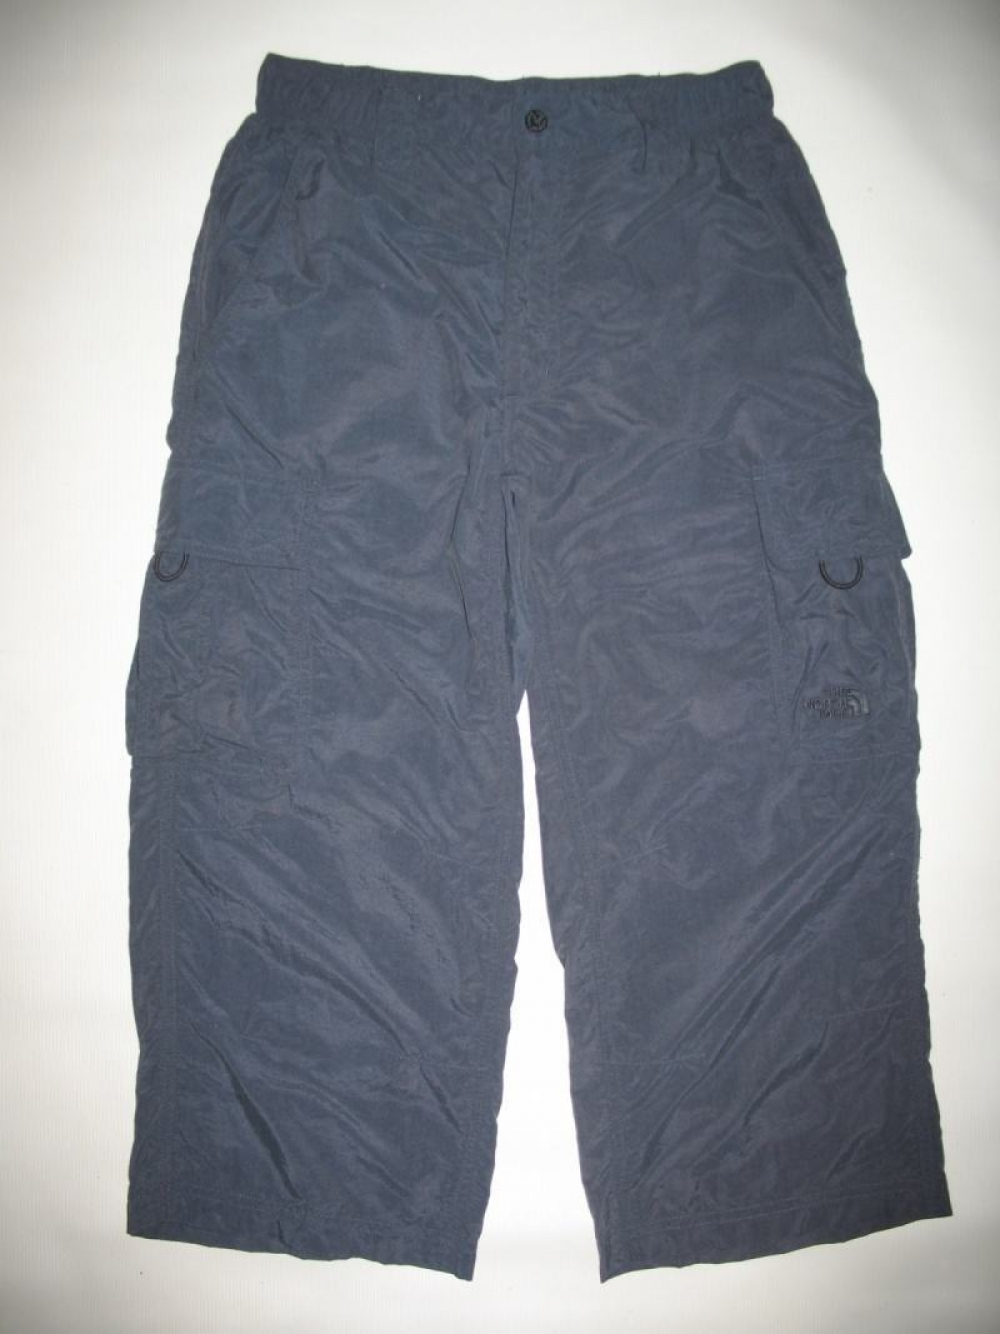 Шорты THE NORTH FACE 3/4 pant  (размер S) - 17847